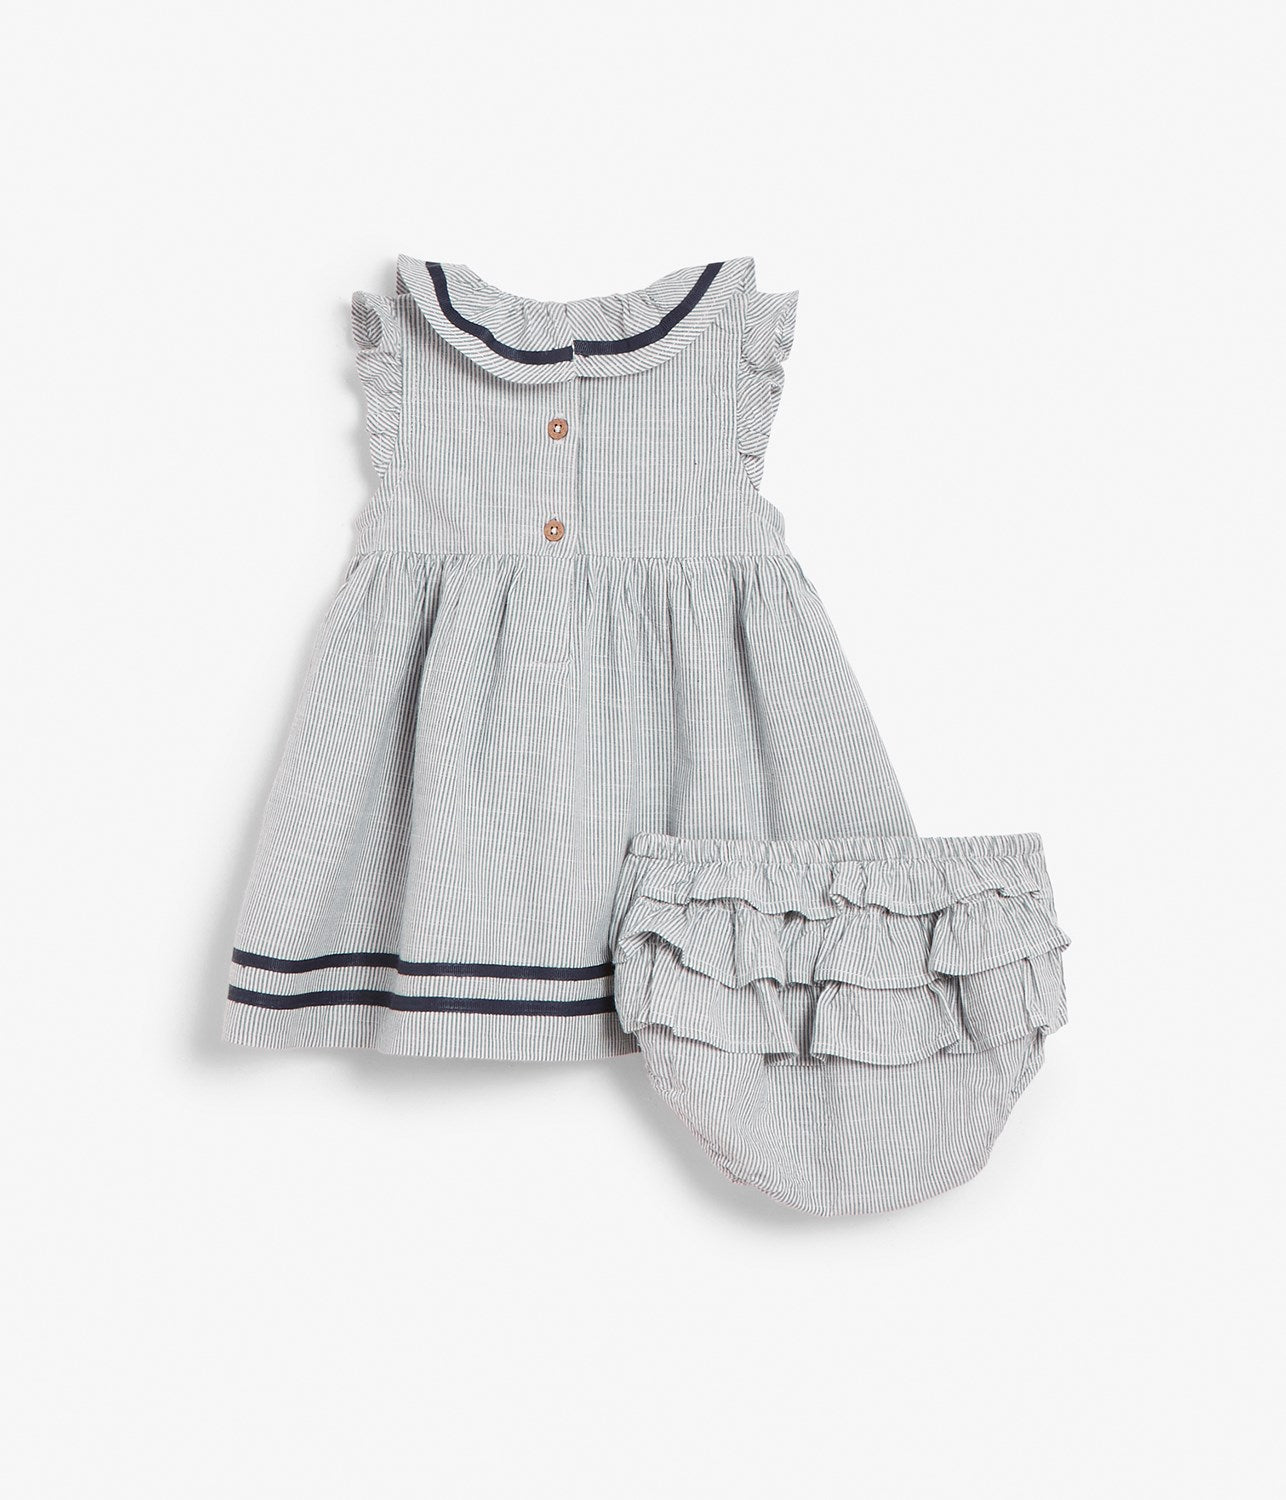 Baby sailor dress with matching bottoms